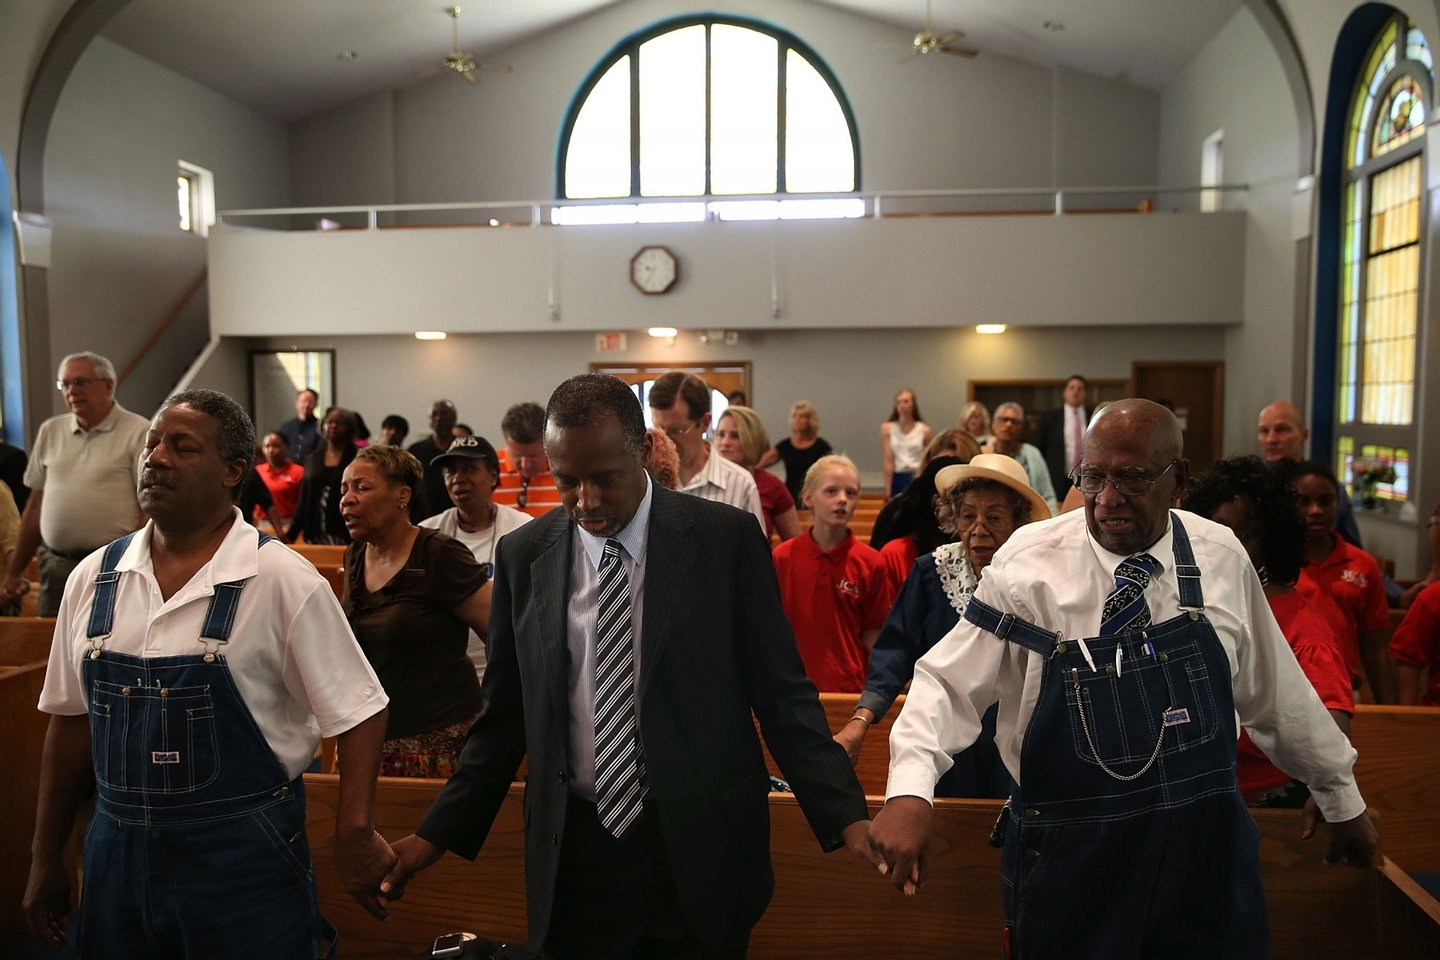 DES MOINES, IA - AUGUST 16: Republican presidential hopeful Ben Carson (C) prays during church services at Maple Street Missionary Baptist Church on August 16, 2015 in Des Moines , Iowa. Ben Carson attended Sunday church services before campaigning at the Iowa State Fair. (Photo by Justin Sullivan/Getty Images)